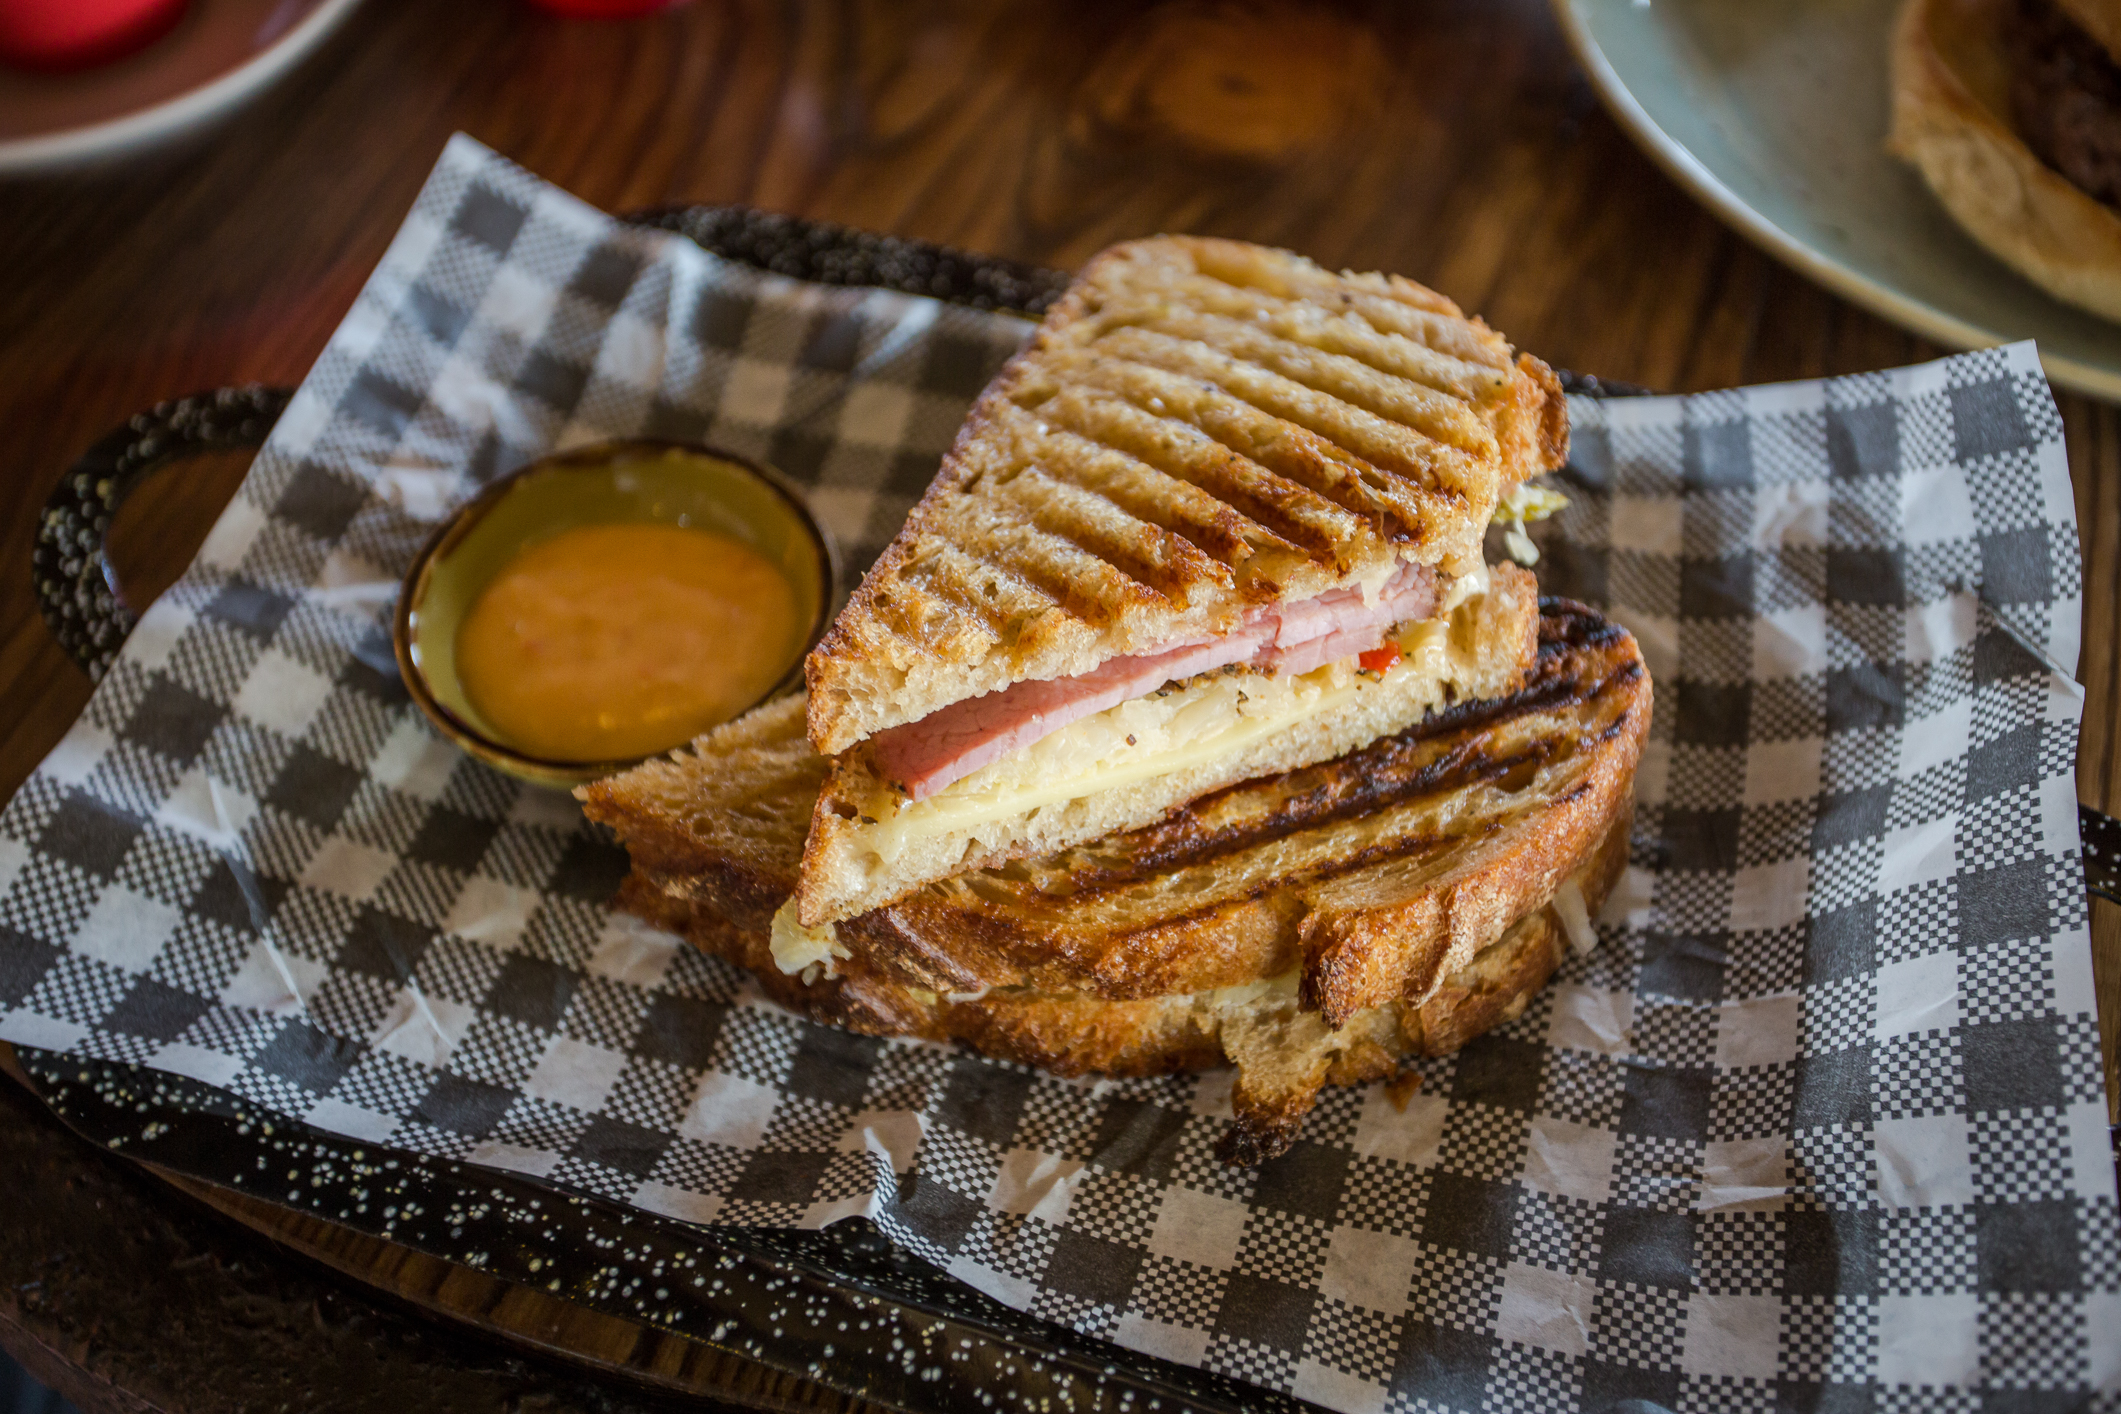 The Rueben Melt